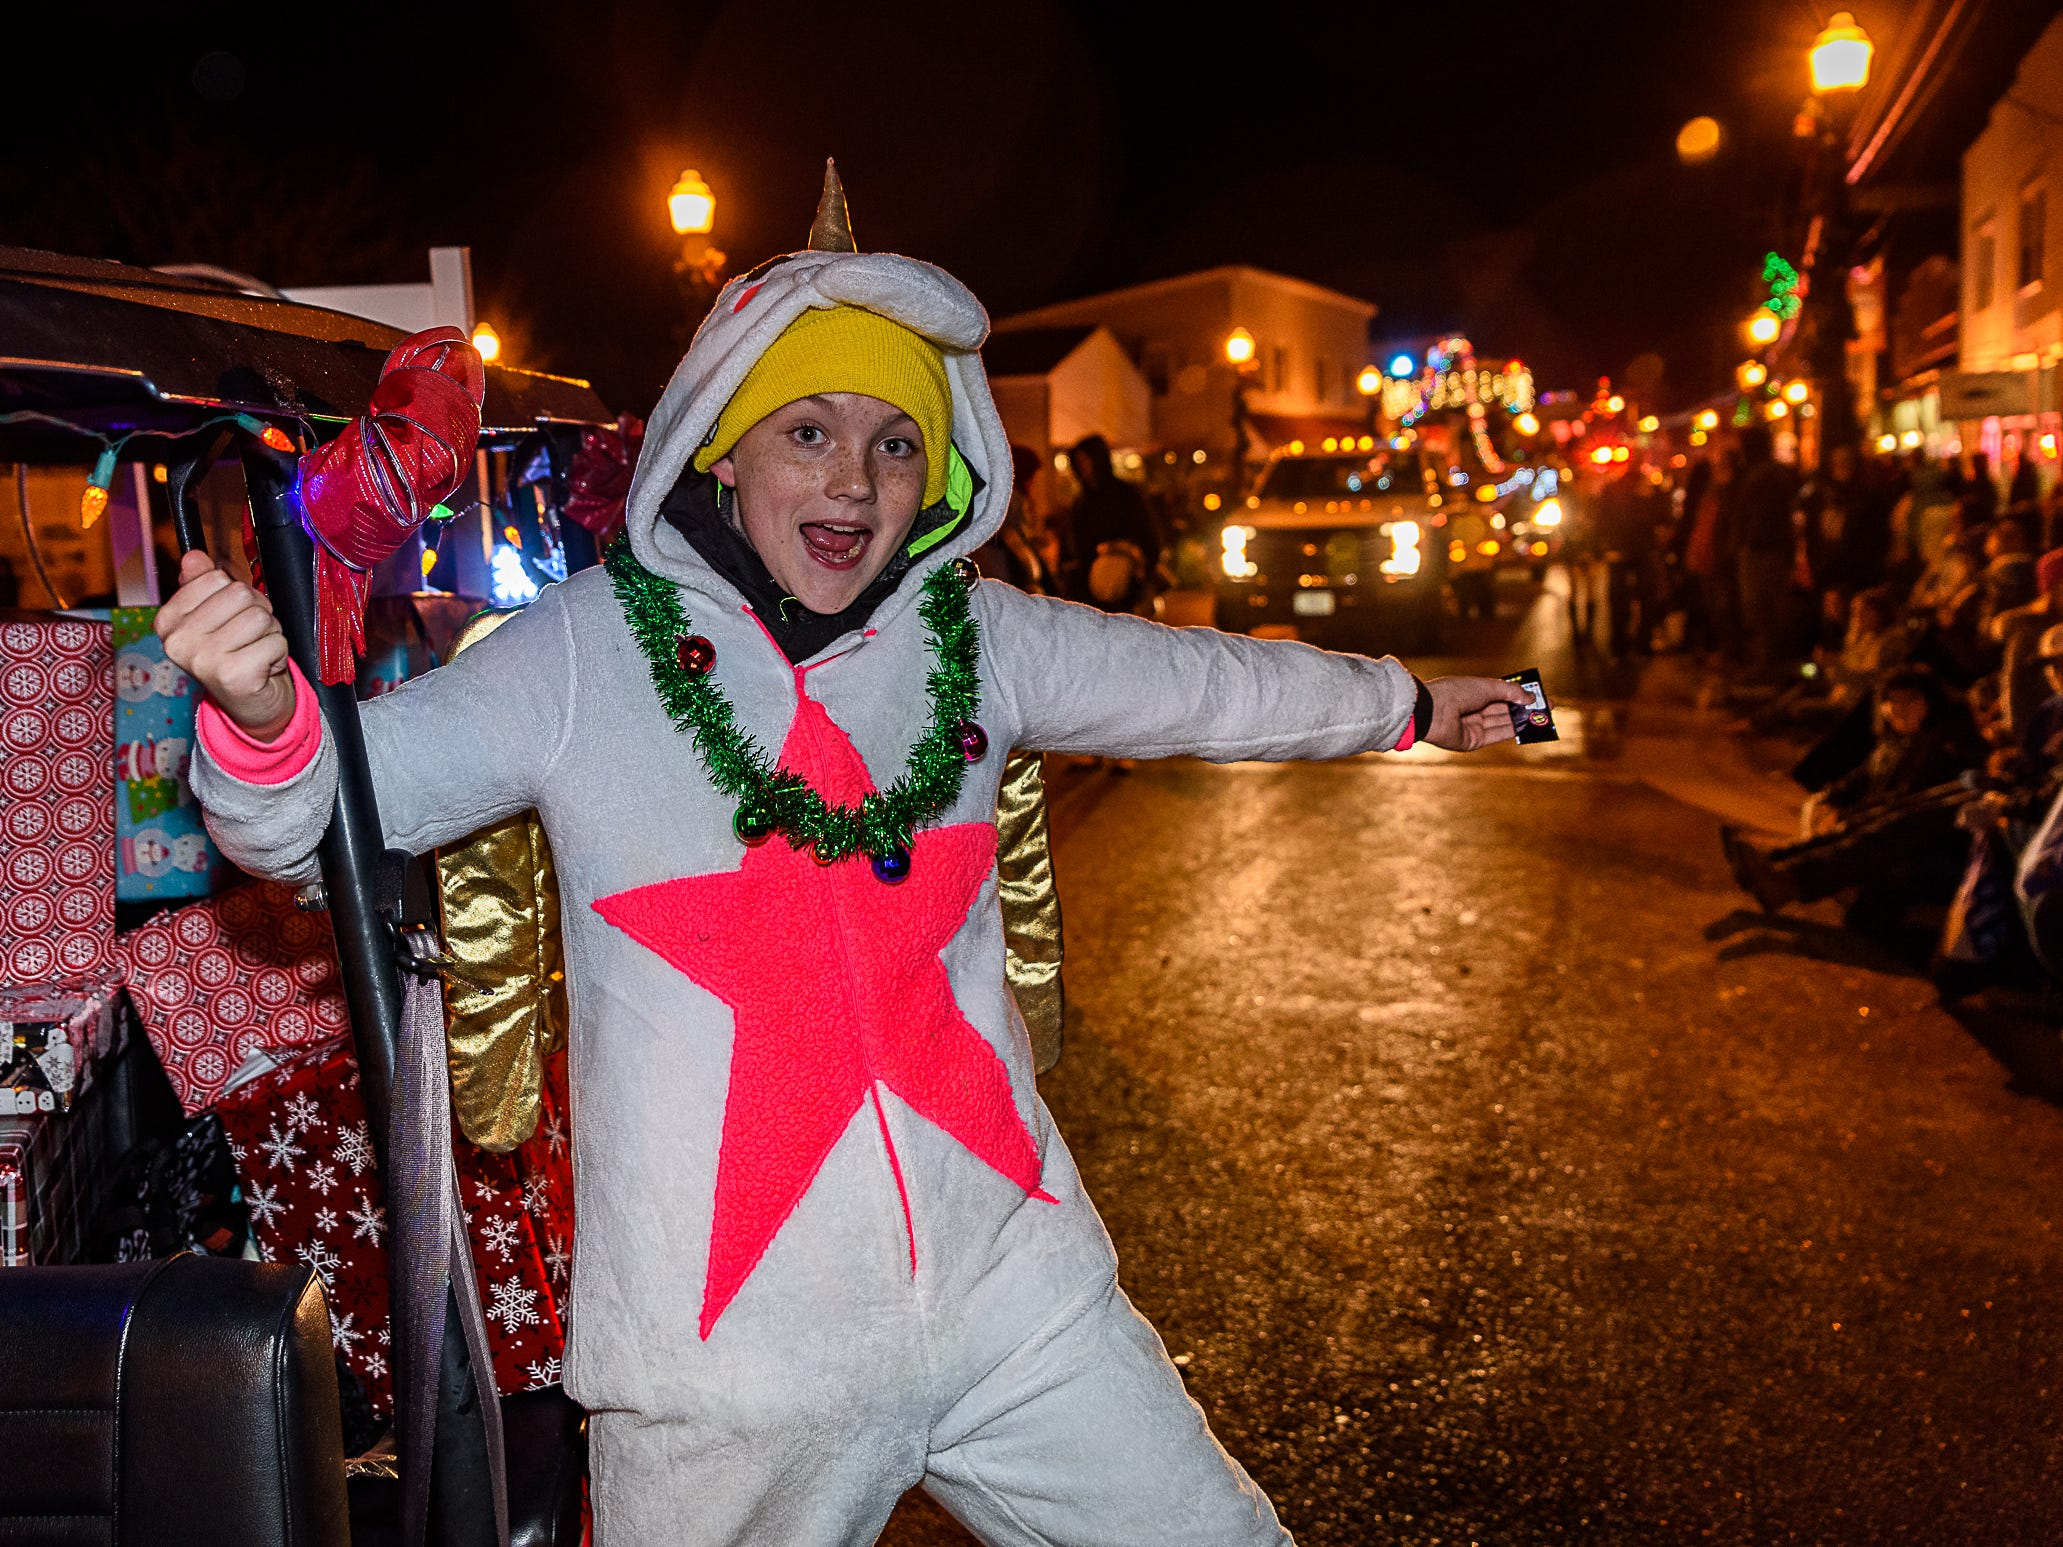 A member of the local Girl Scout Troop enjoy strikes a pose during the Christmas parade on Saturday, Dec. 2.